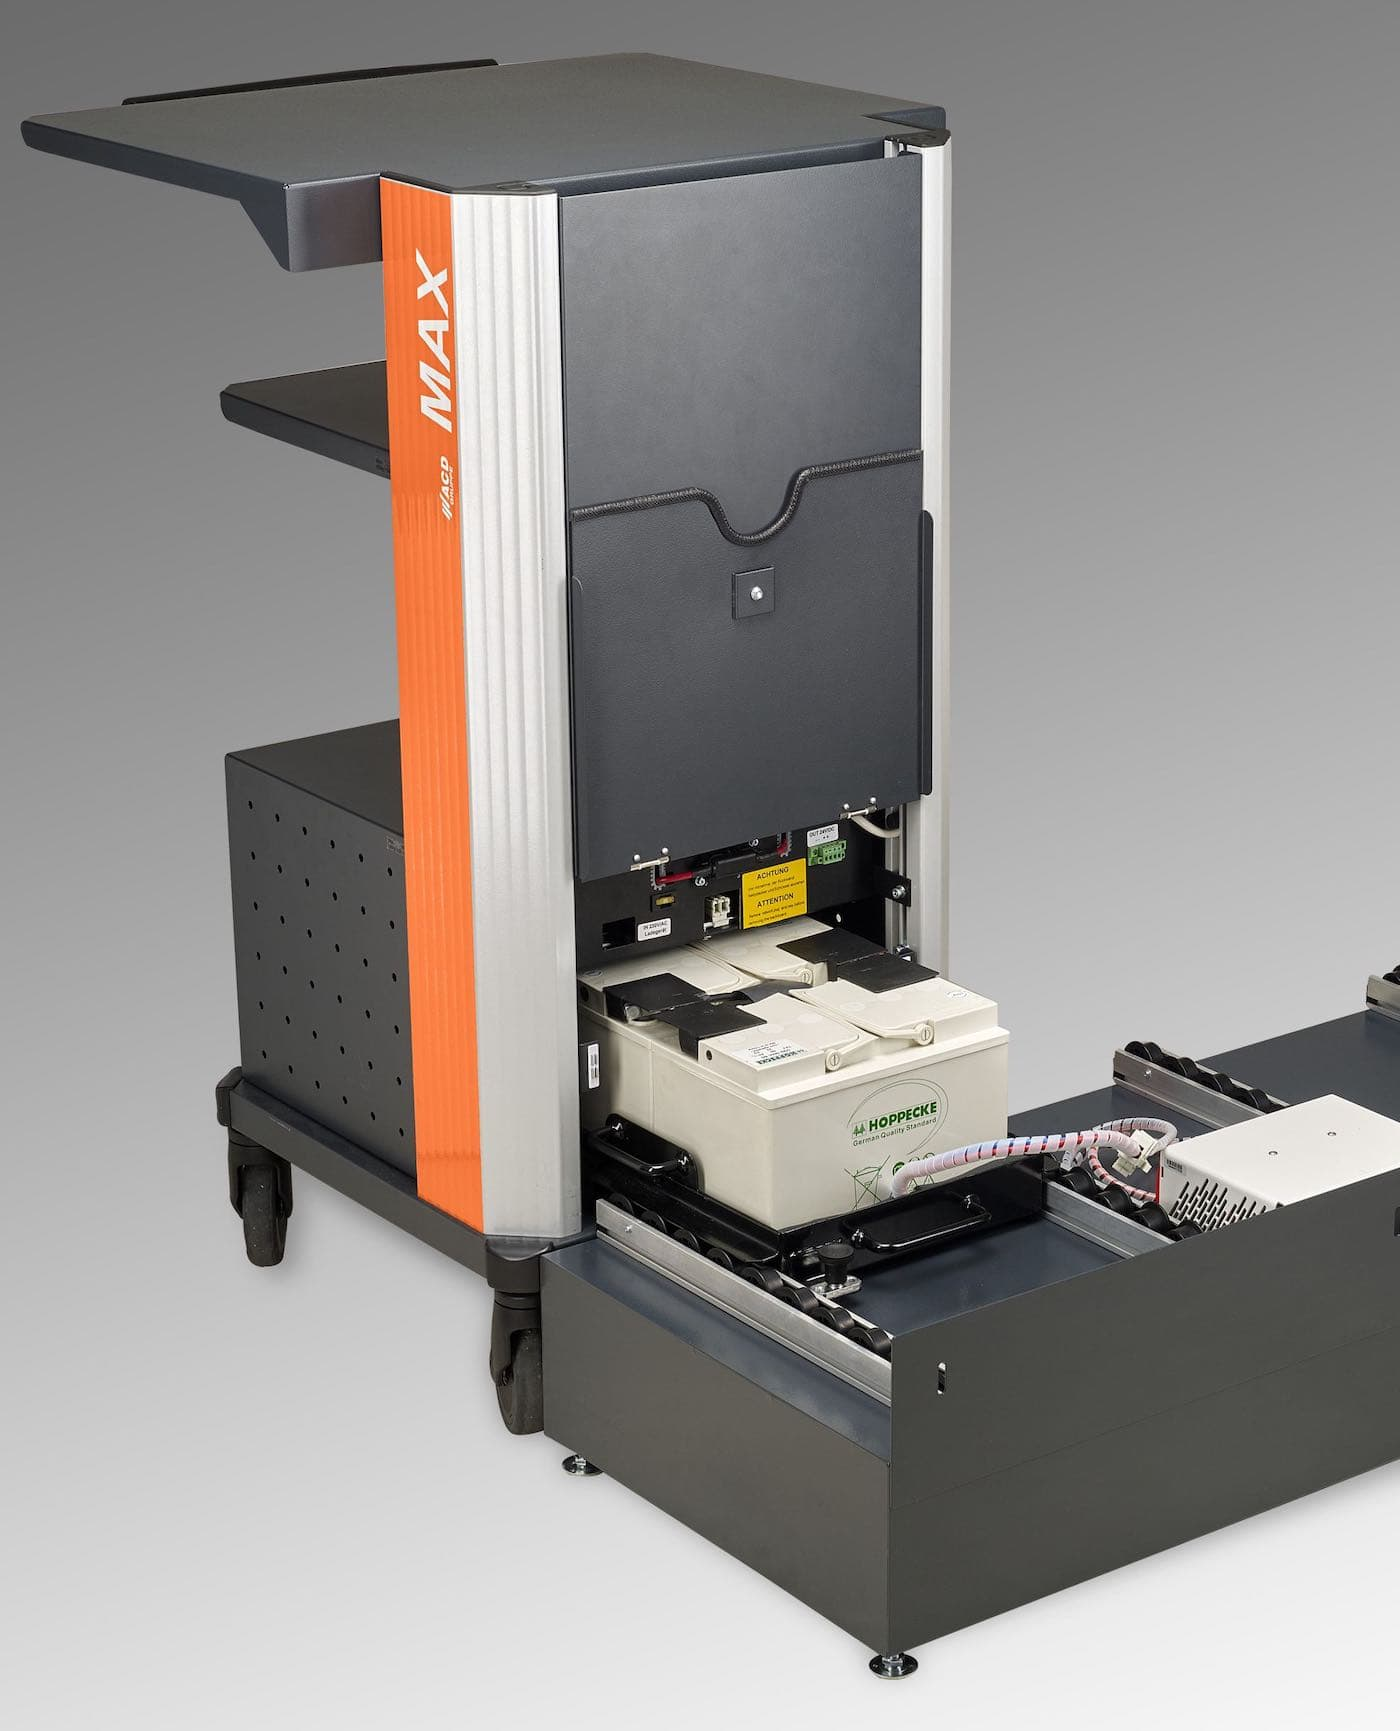 Warehouse Battery-Powered Mobile Workstation with quick change battery MAX BWS-R US